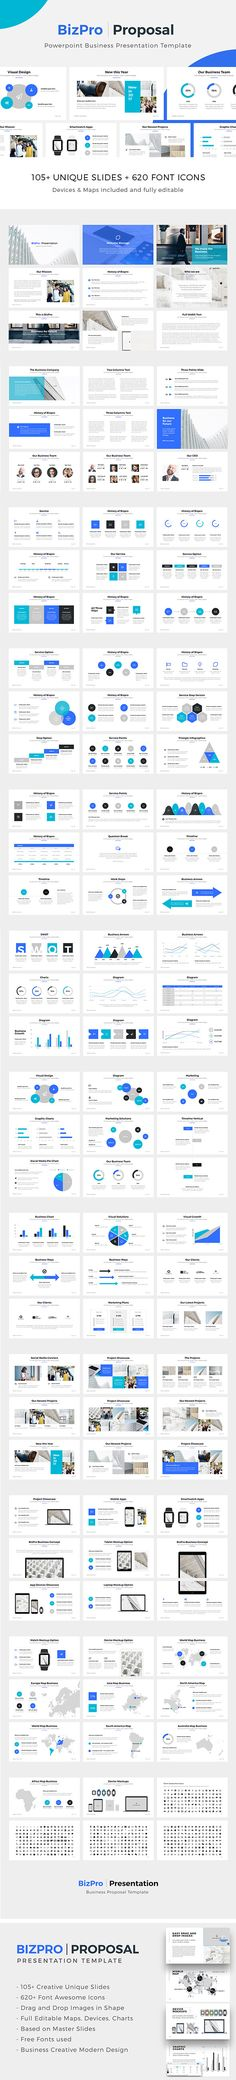 Commercial Proposal Format Mesmerizing Commercial Proposal Template #09  Commercial Proposal  Pinterest .